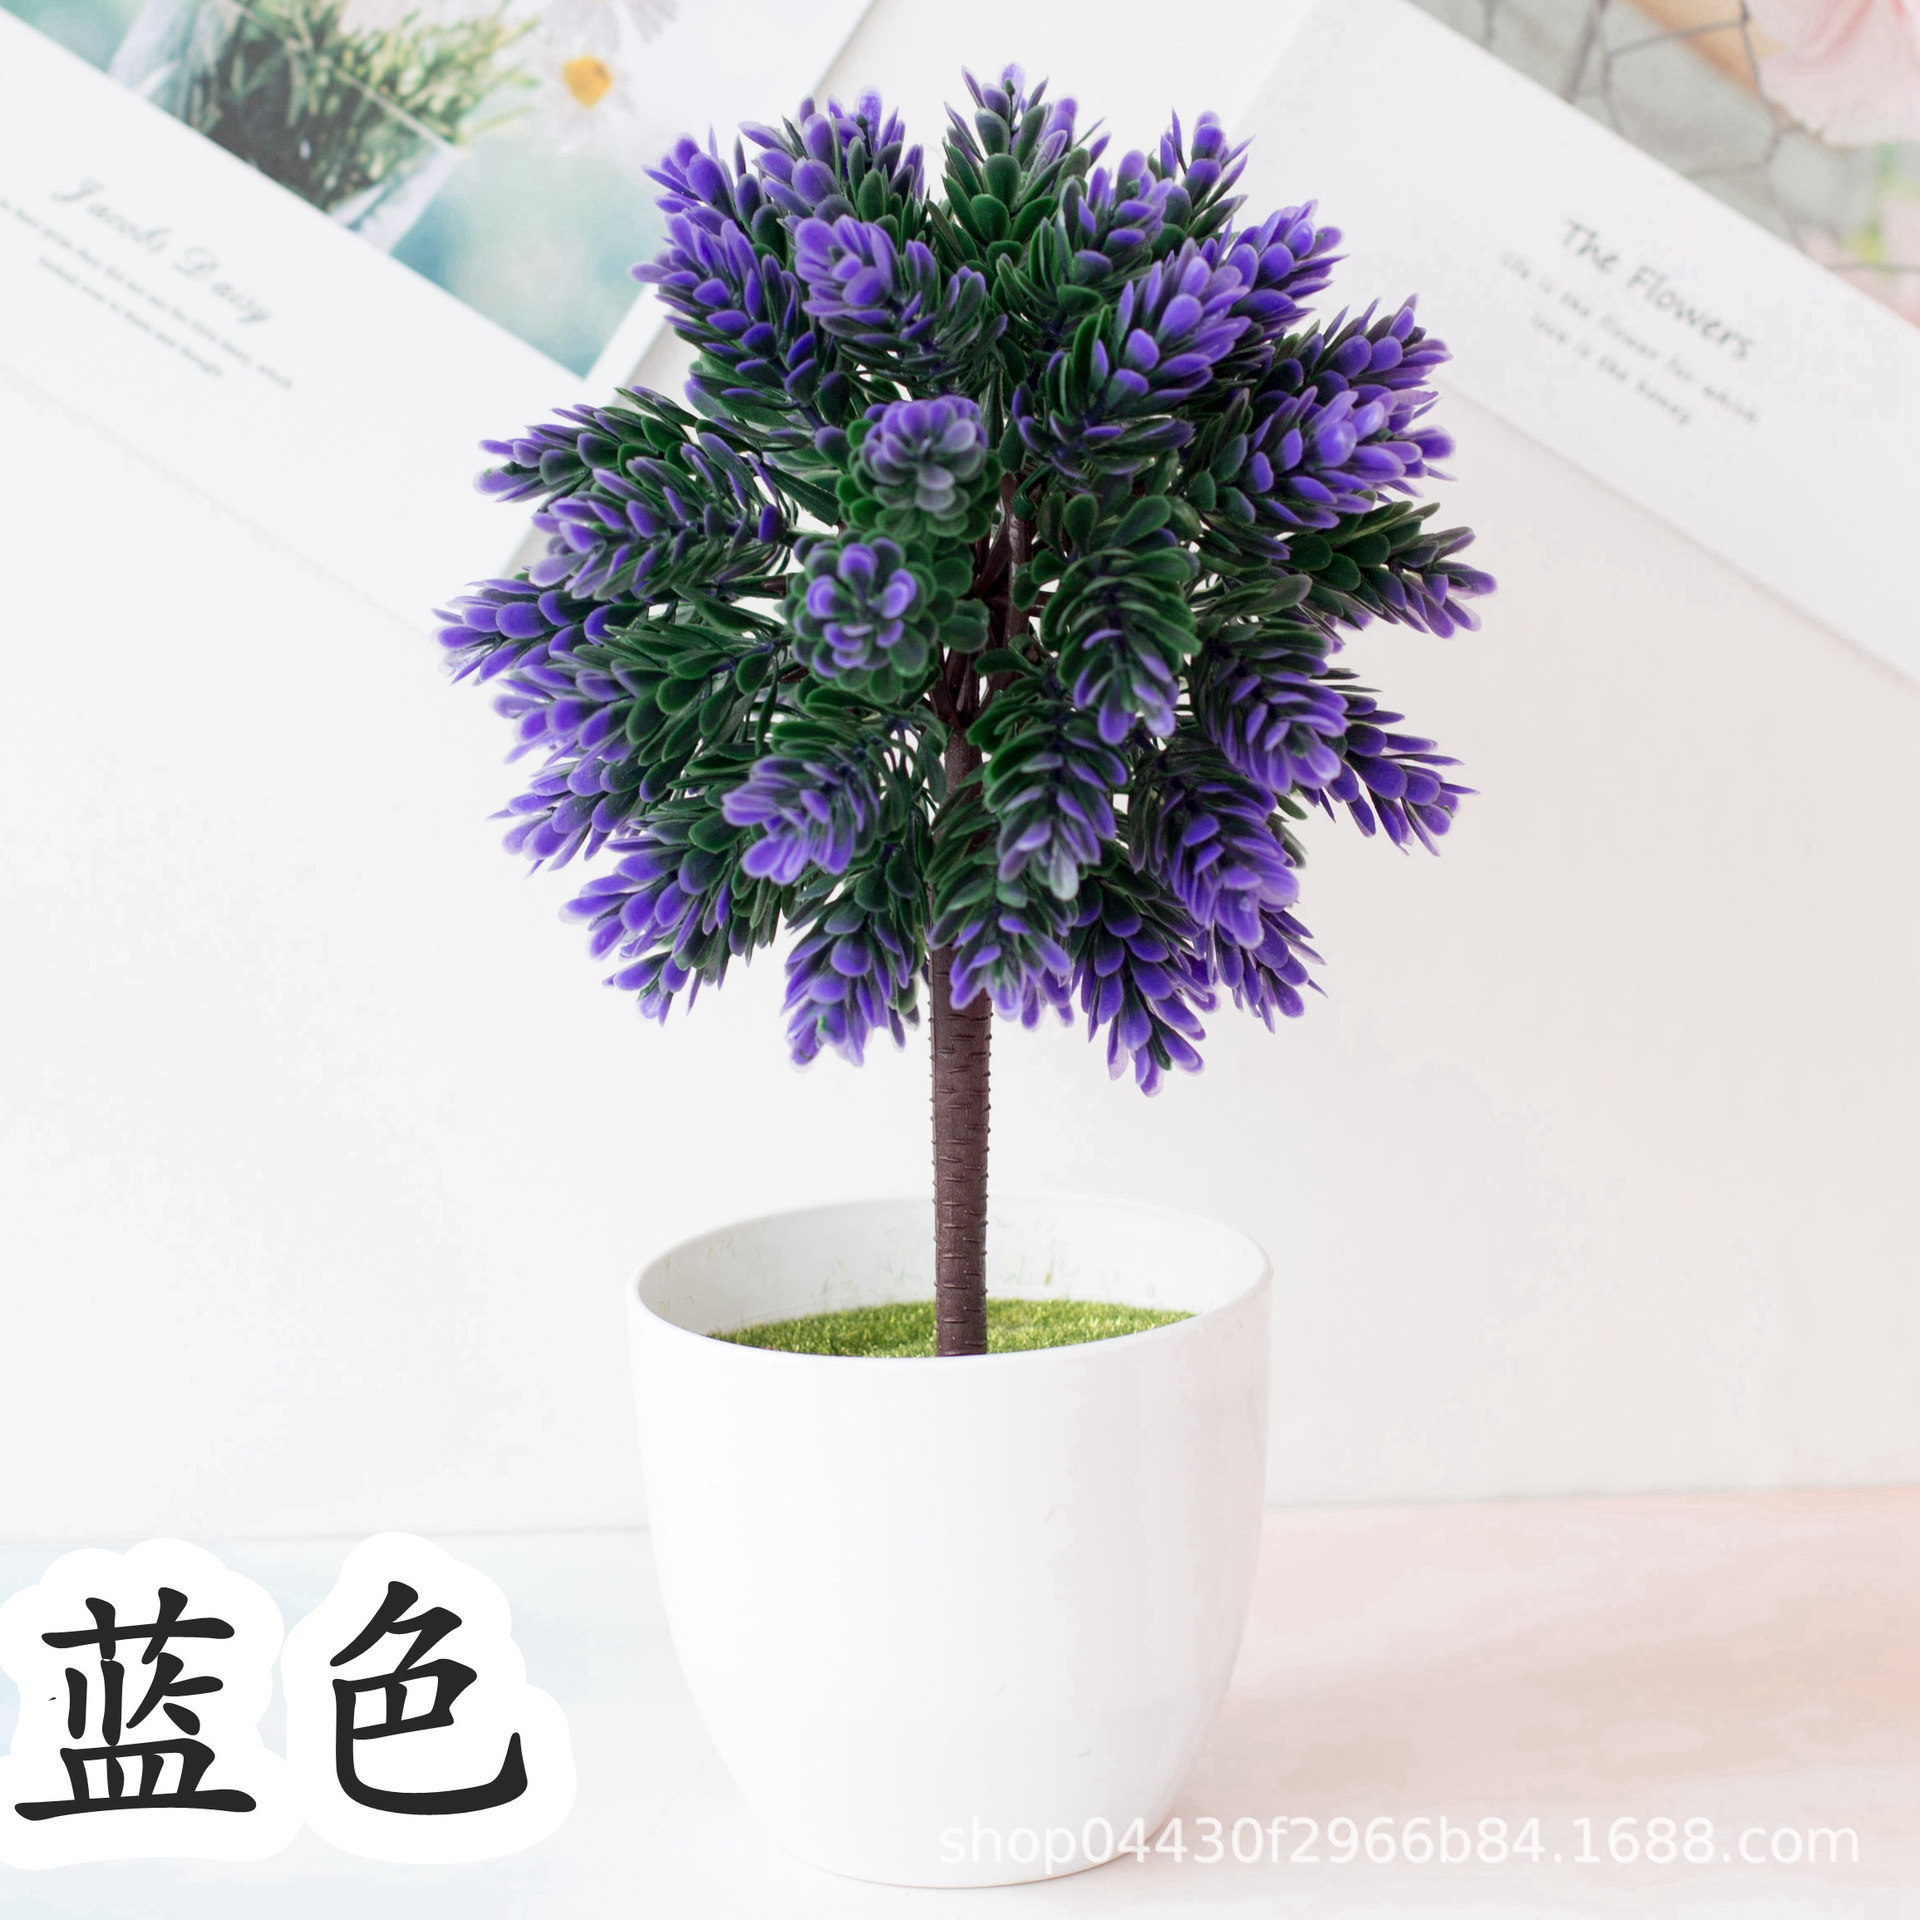 New 1Pcs Artificial Plants Bonsai Small Tree with Pot HTB1ncY8eRCw3KVjSZFuq6AAOpXaV Artificial Plants